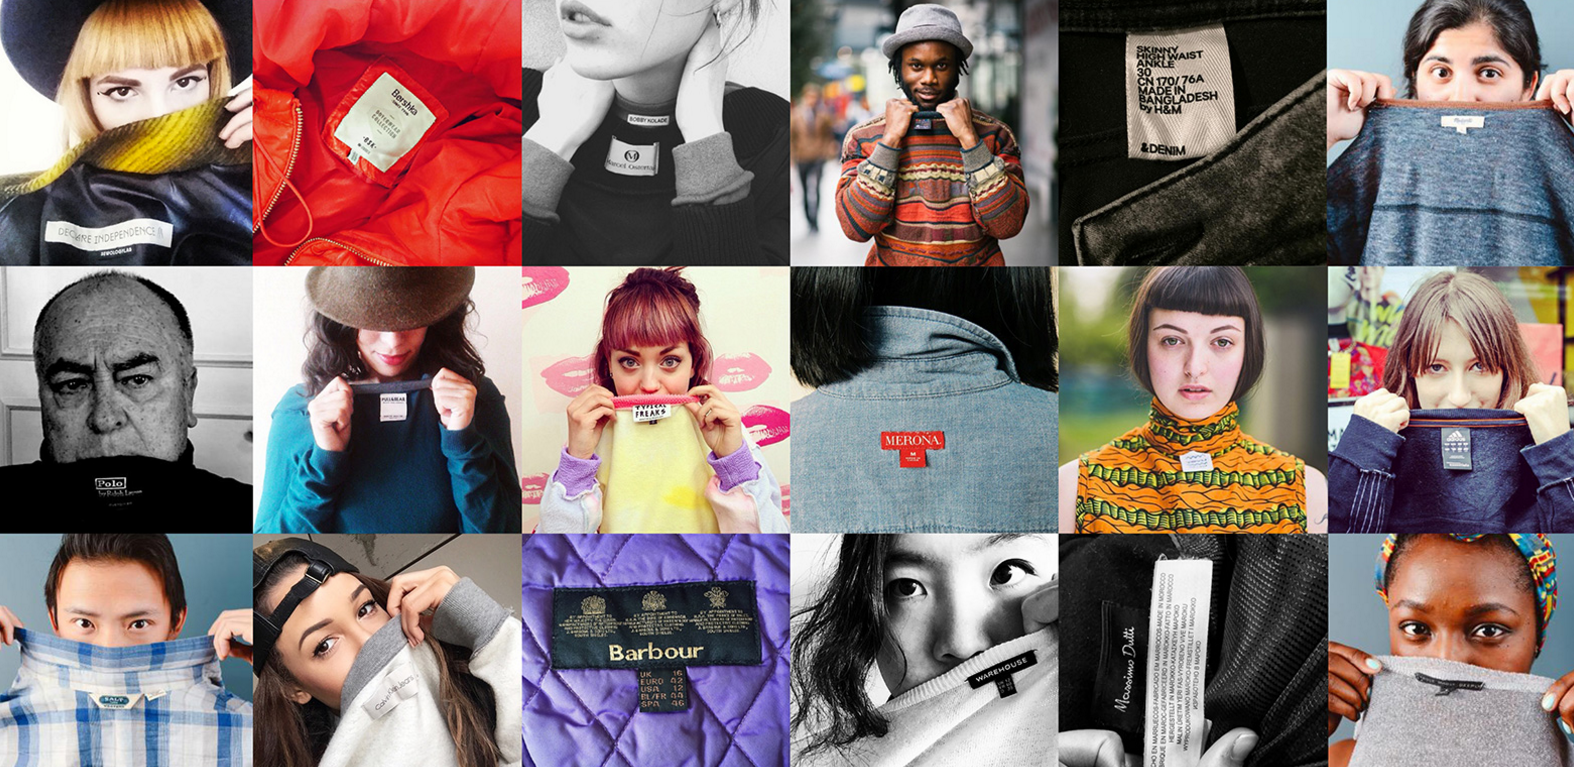 #whomademyclothes // 'Fashion Revolution' and what it means to us